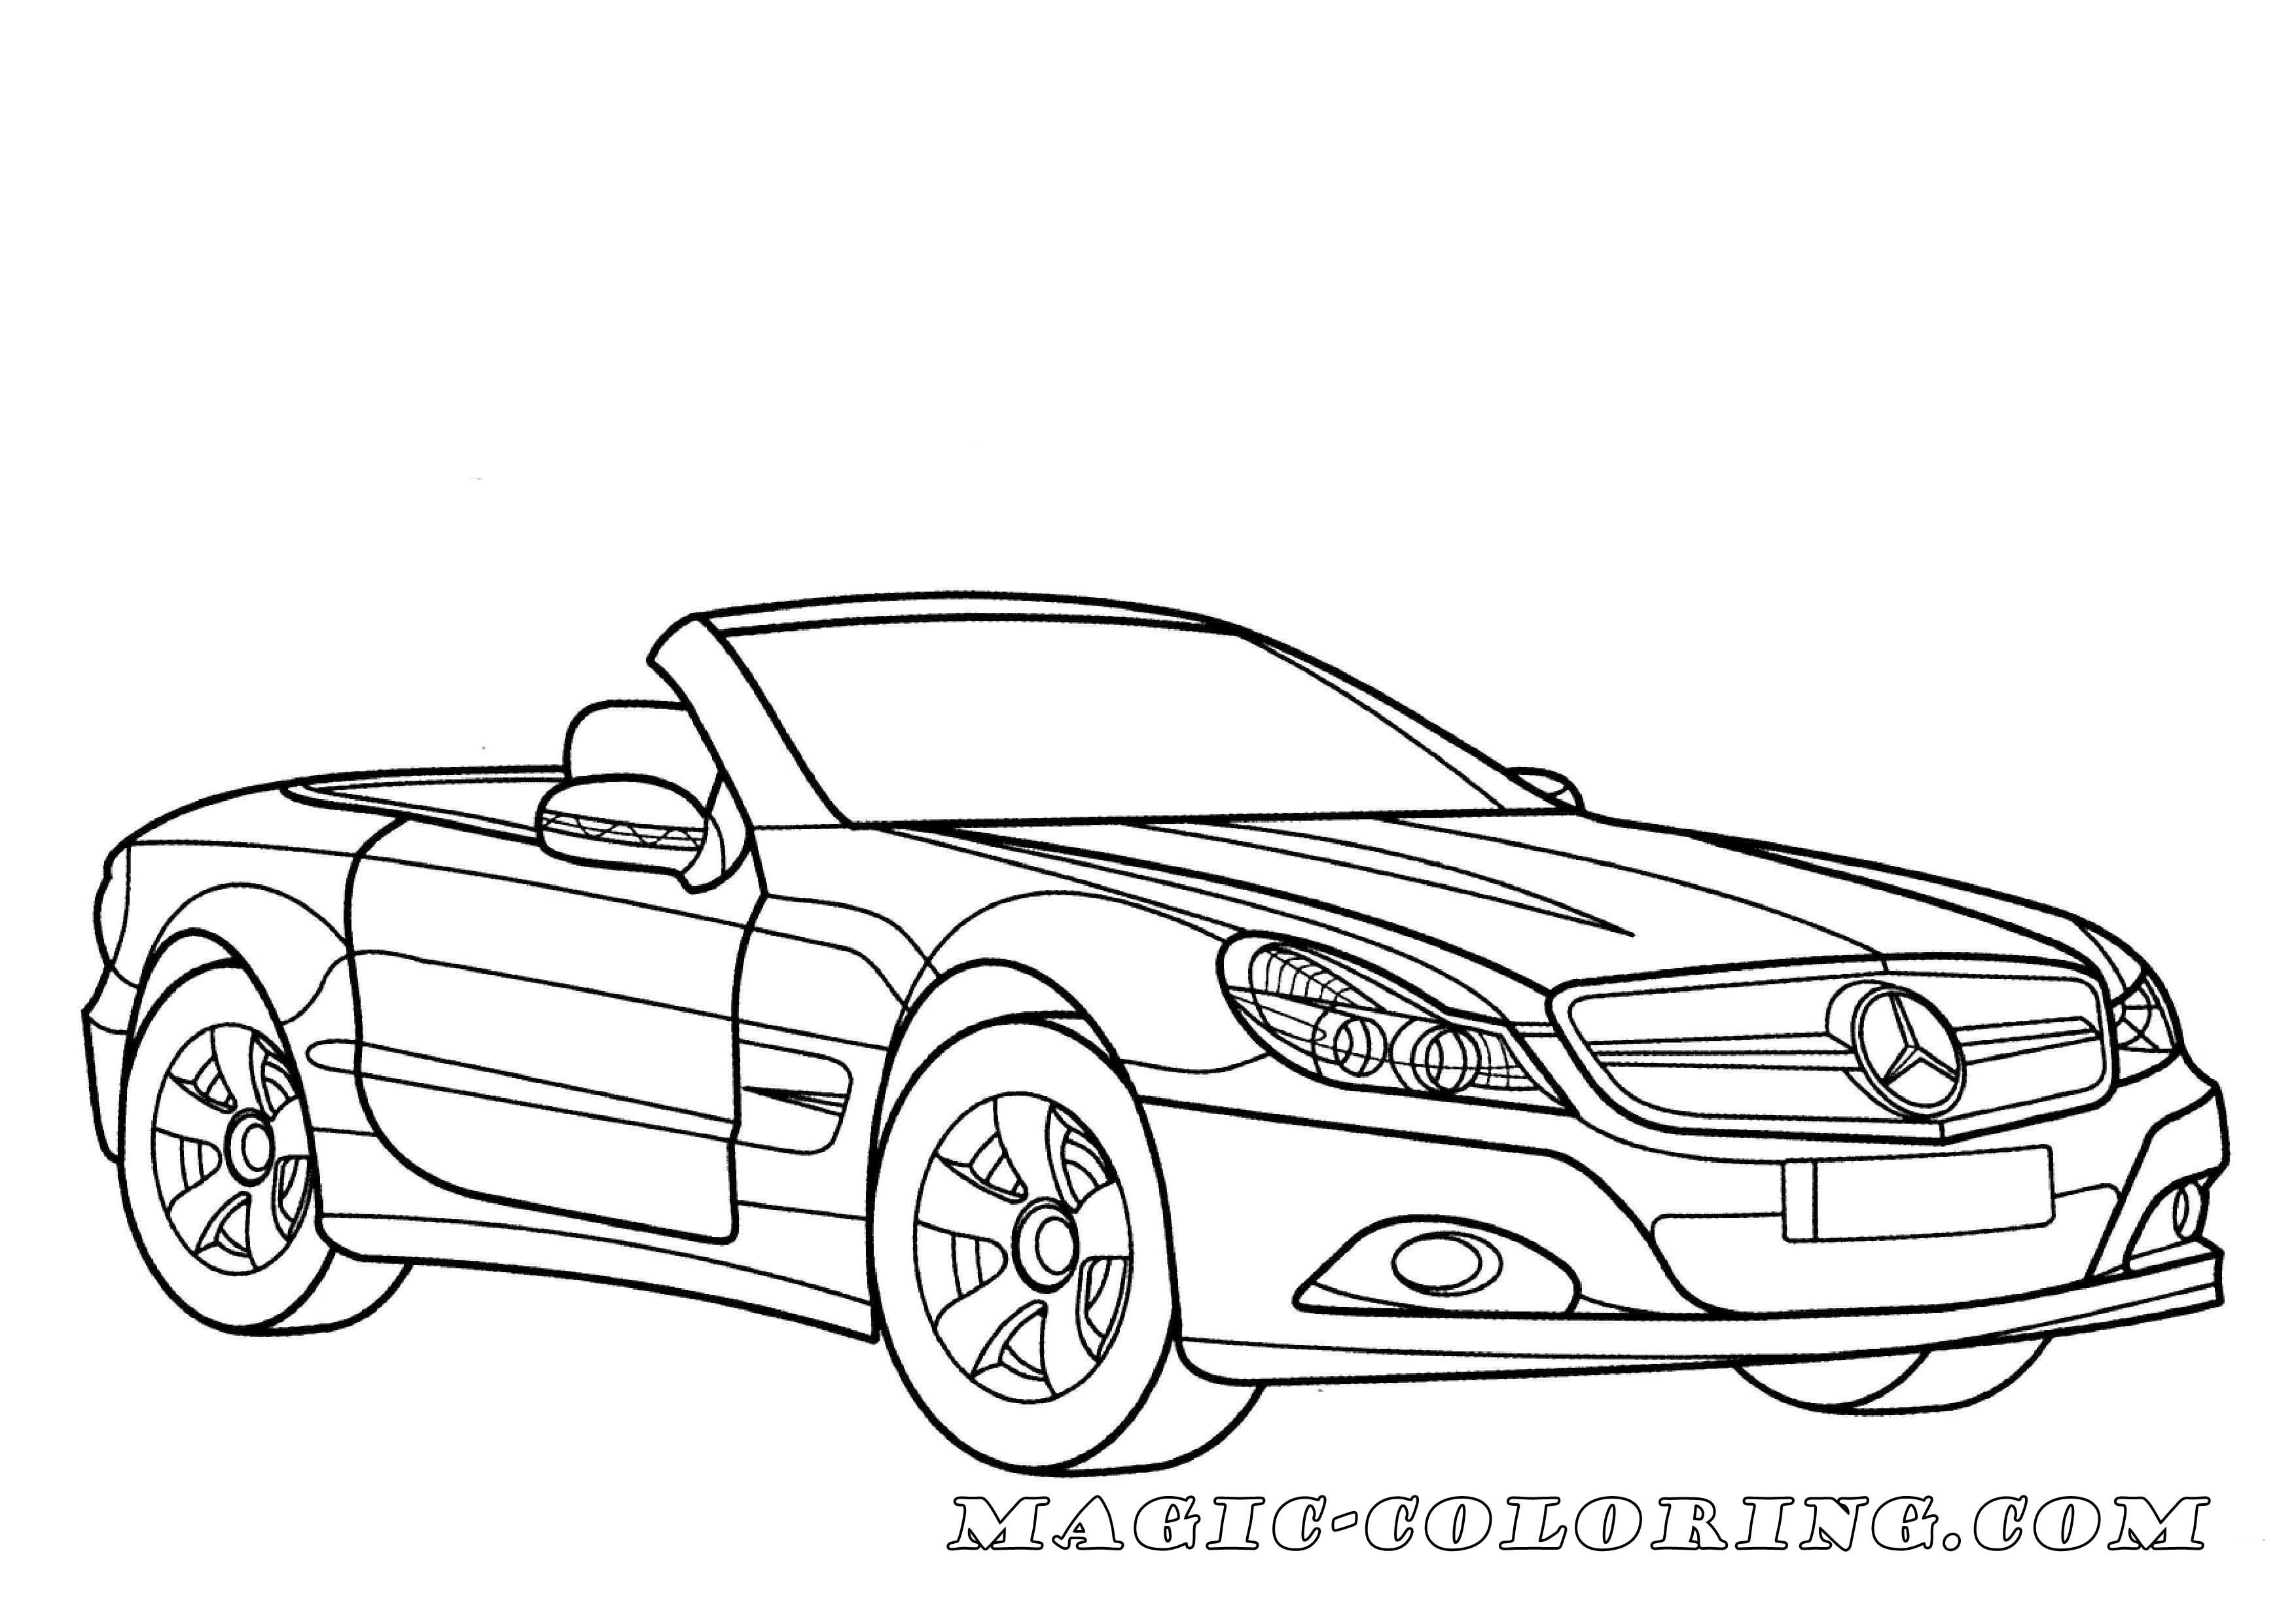 Transportation Coloring Pages 車 ベンツ 插画 画